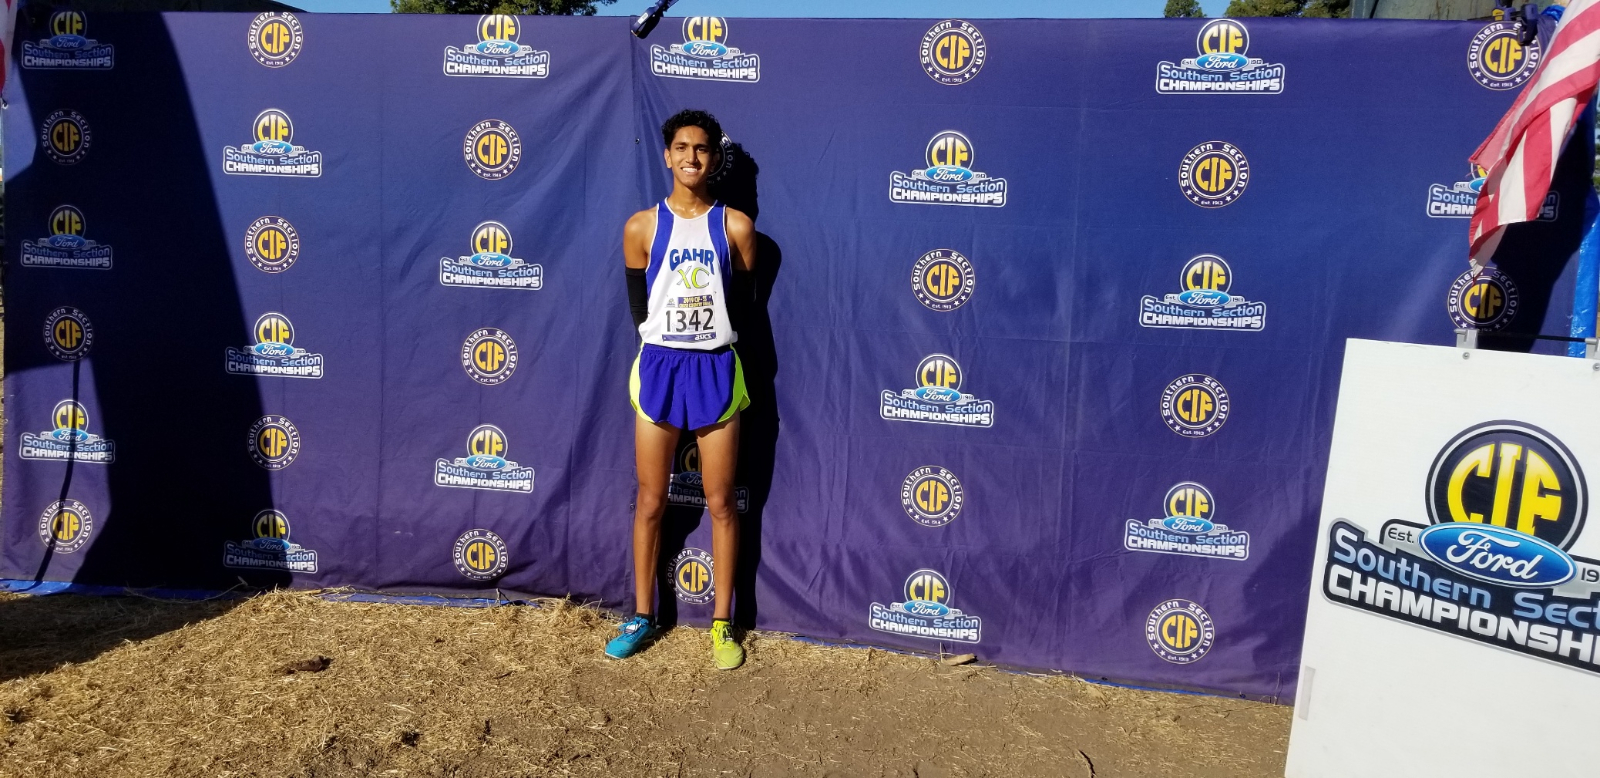 Kishan Patel makes school history by being the 1st Gahr athlete to go to State twice.